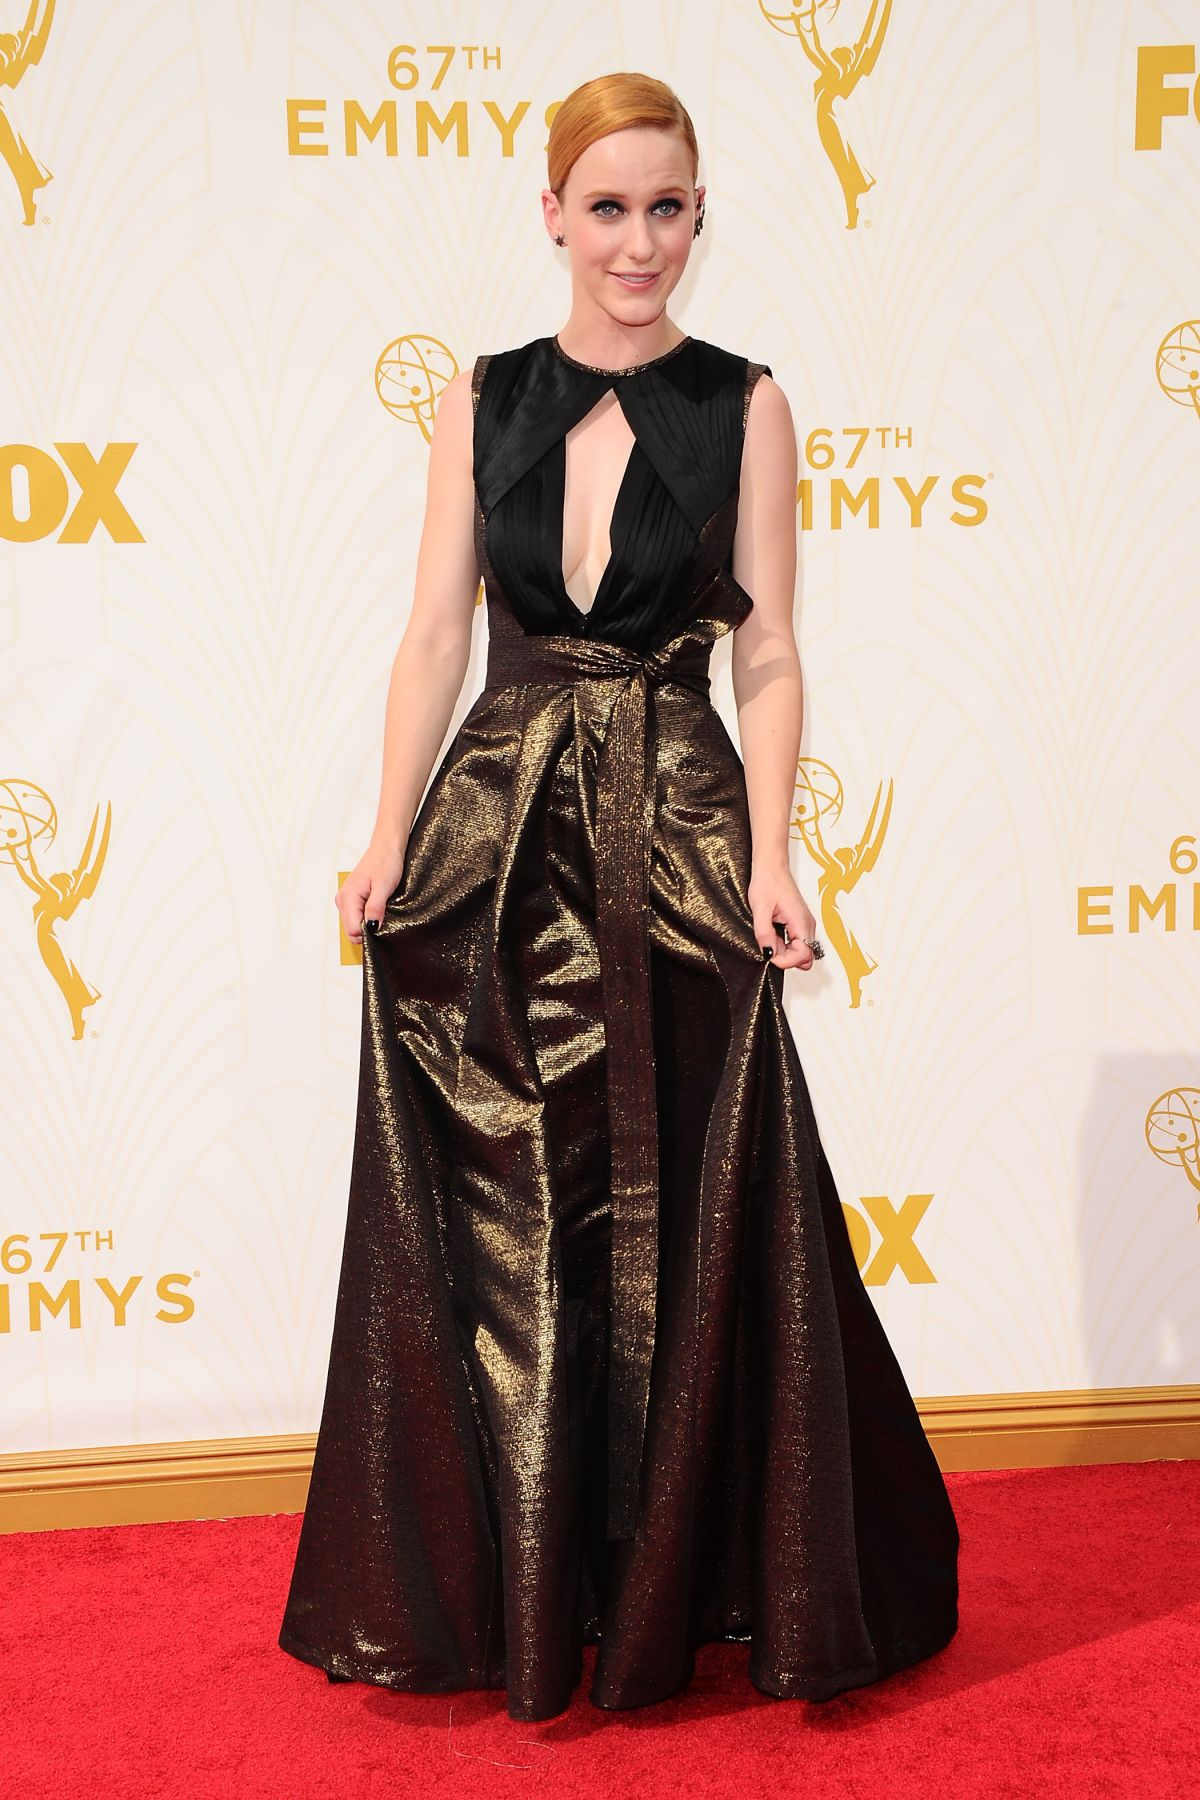 RACHEL BROSNAHAN at 2015 Emmy Awards in Los Angeles 09/20/2015